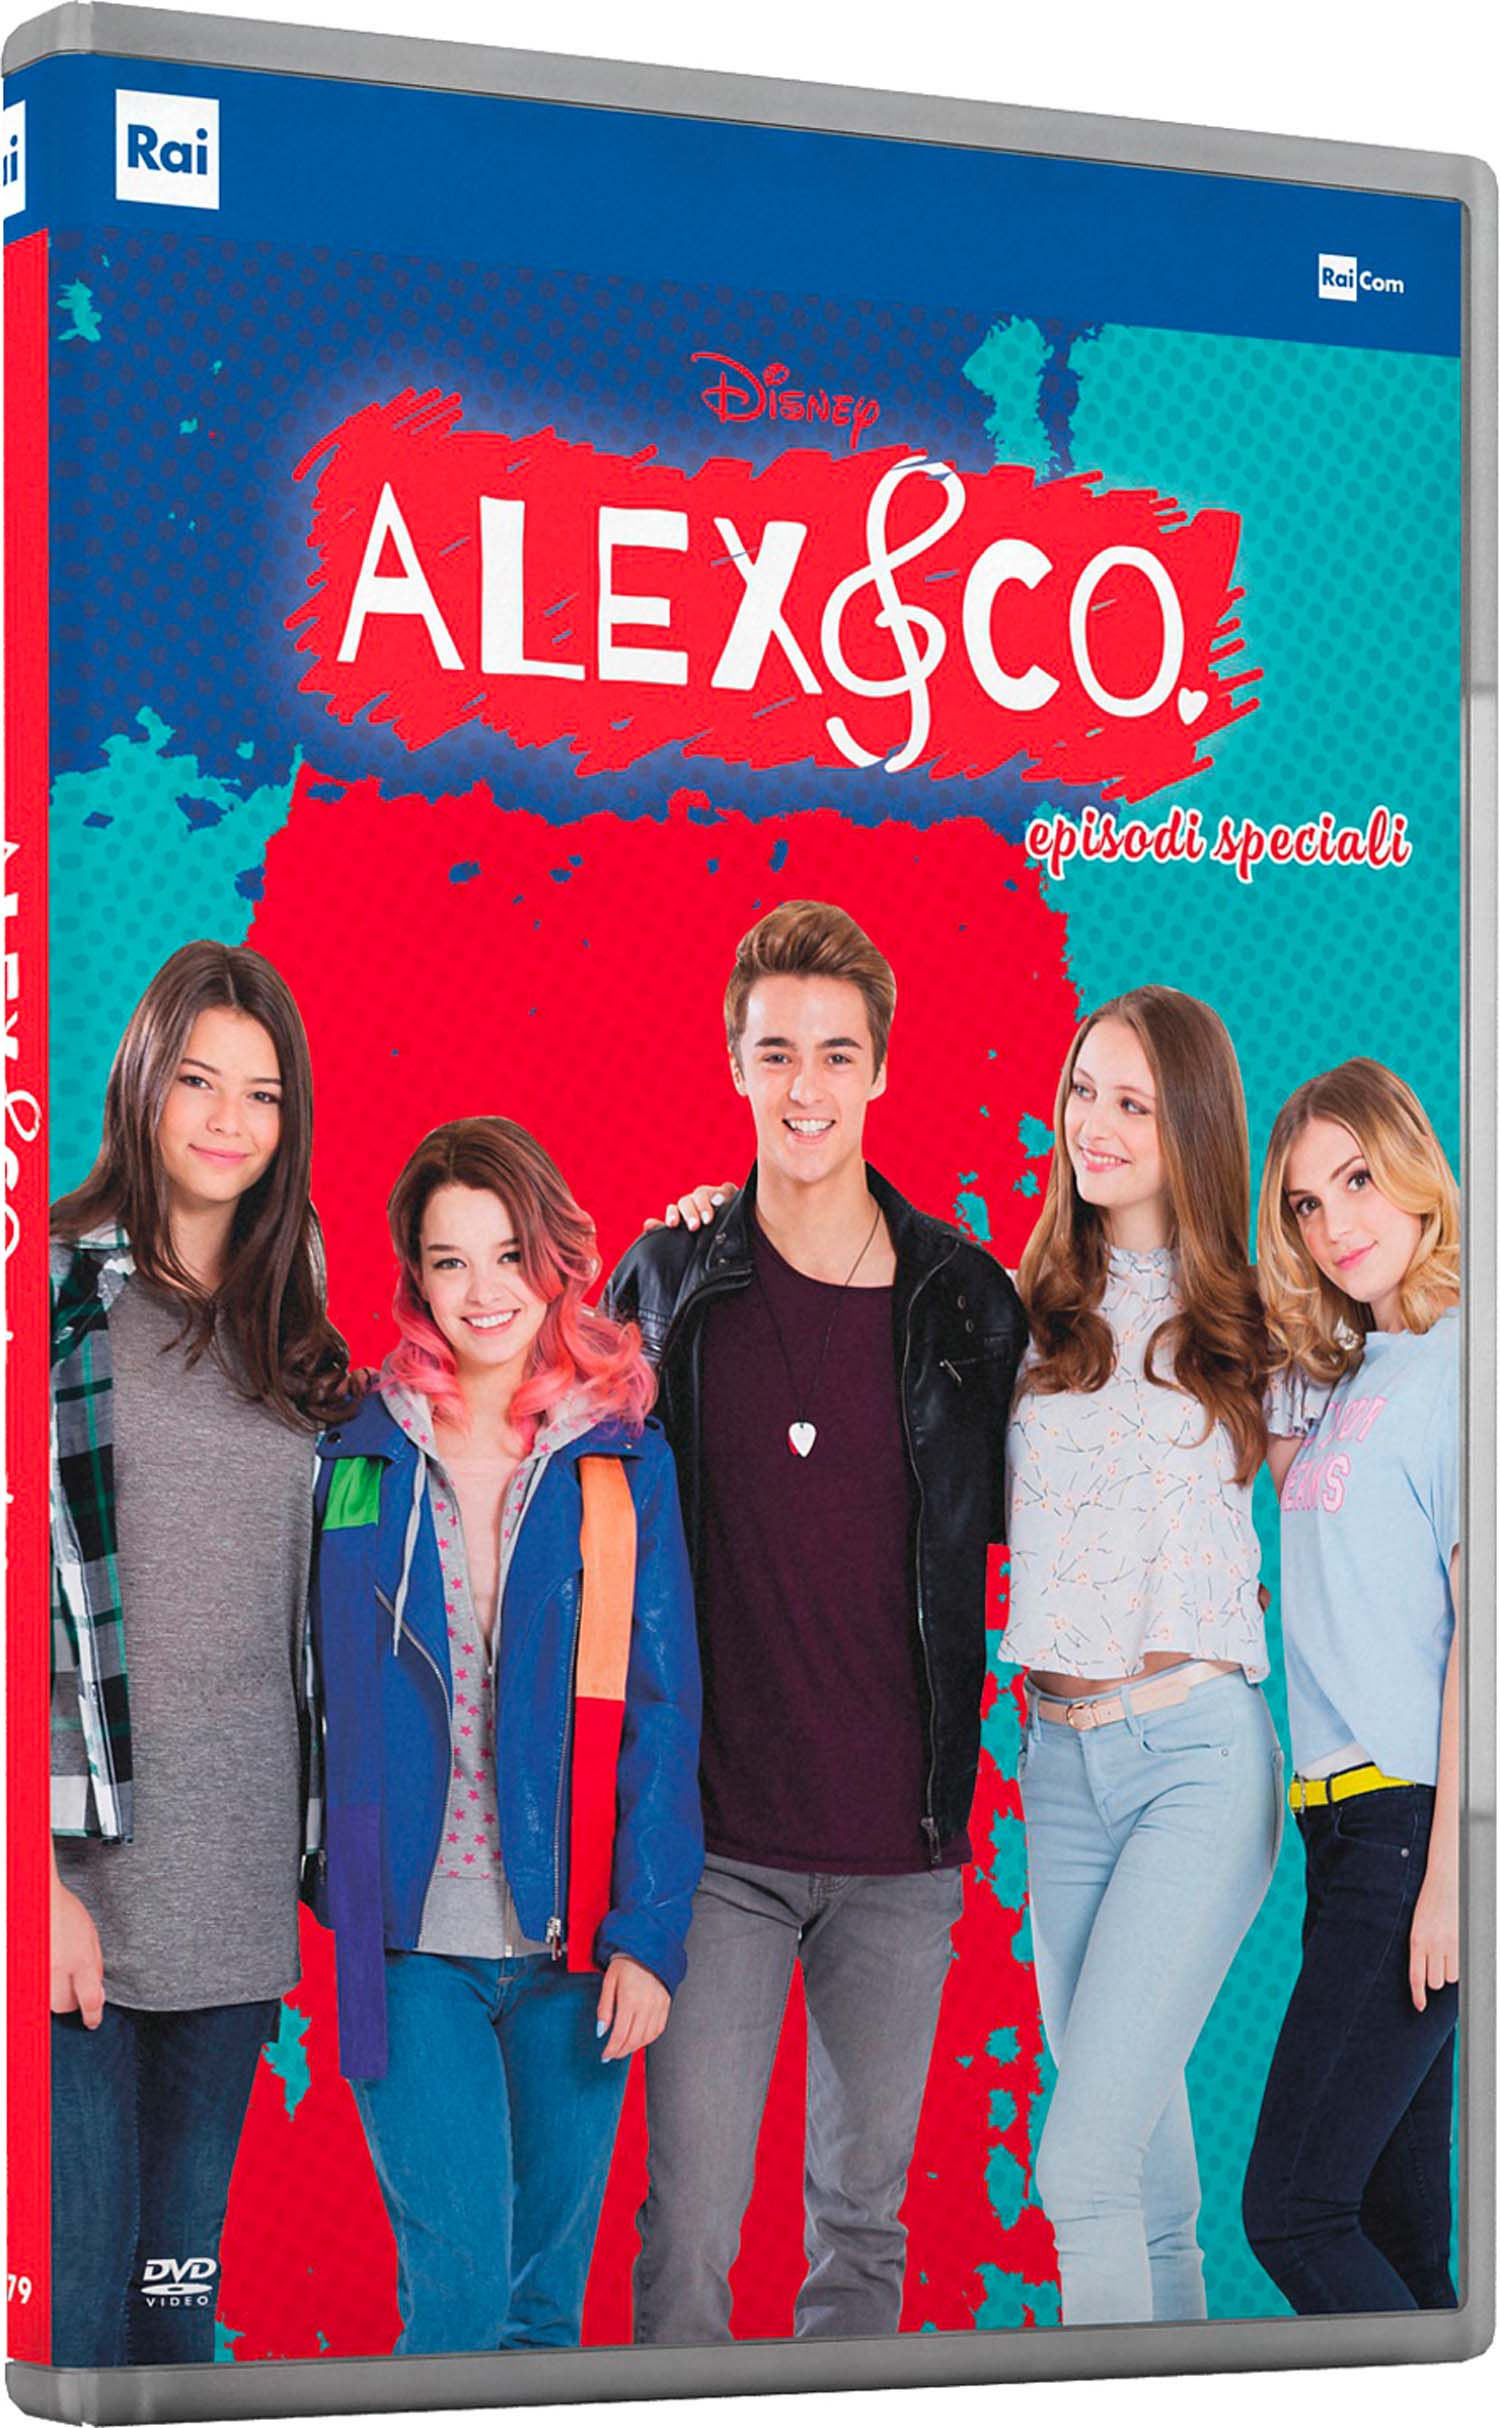 ALEX & CO. - EPISODI SPECIALI (DVD)